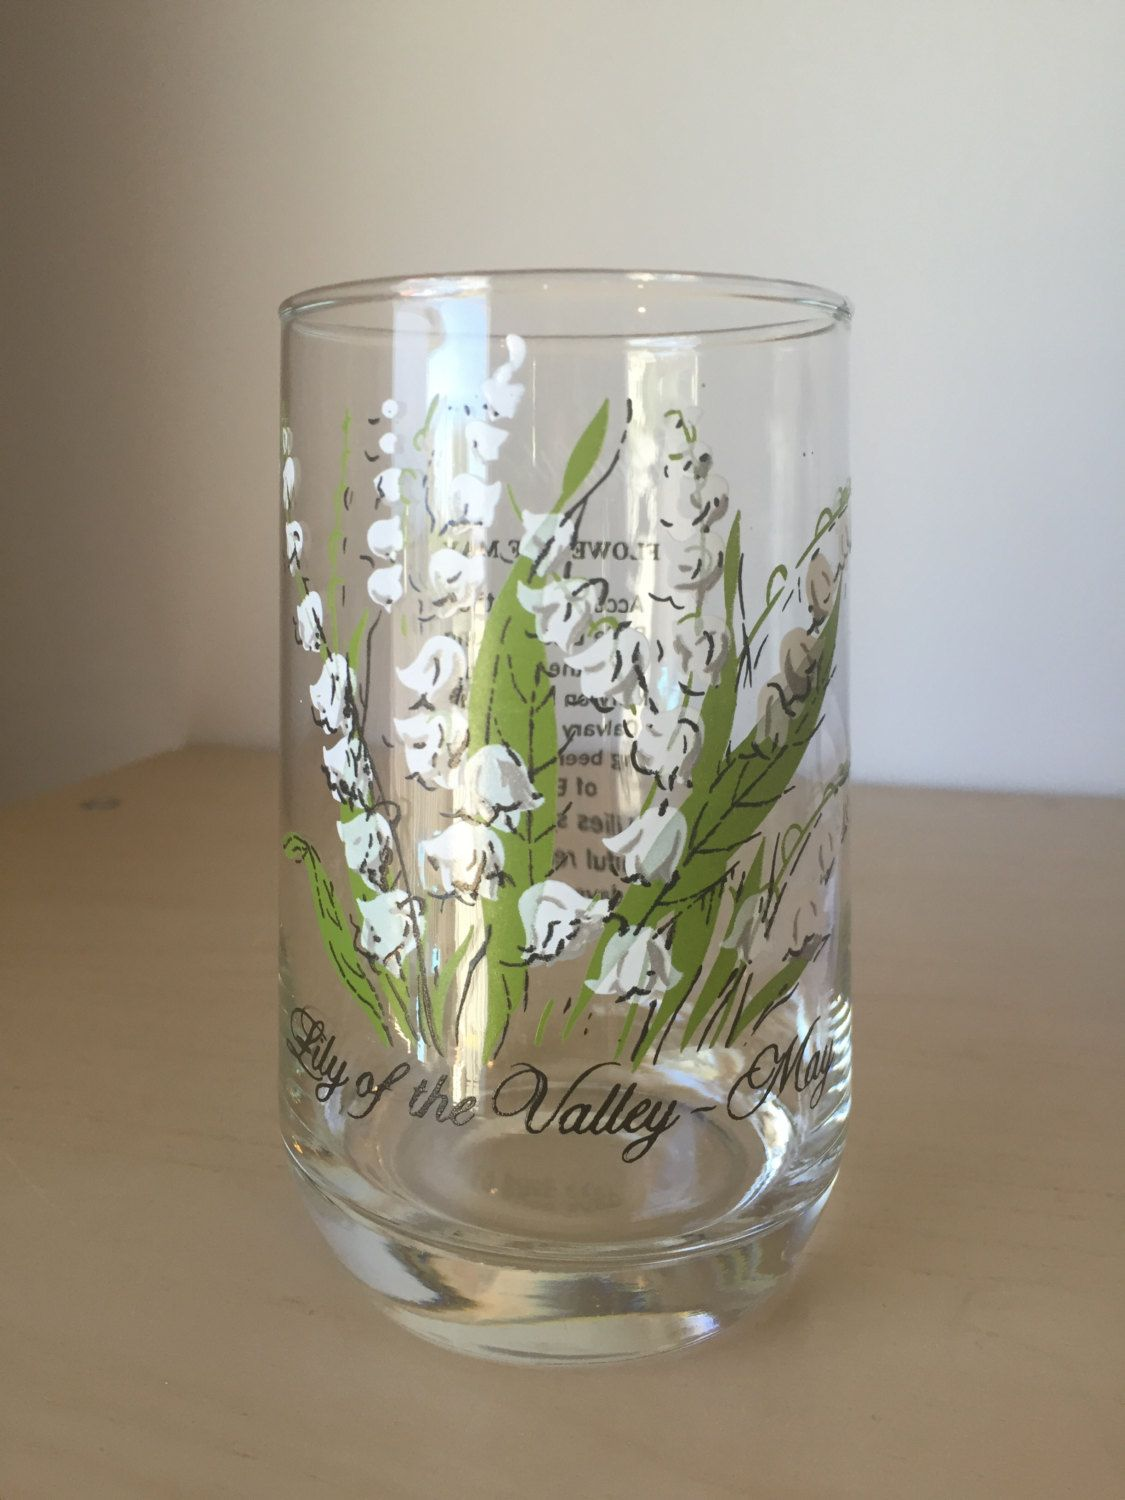 Vintage flower of the month drinking glass may lily of the valley vintage flower of the month drinking glass may lily of the valley drinkware izmirmasajfo